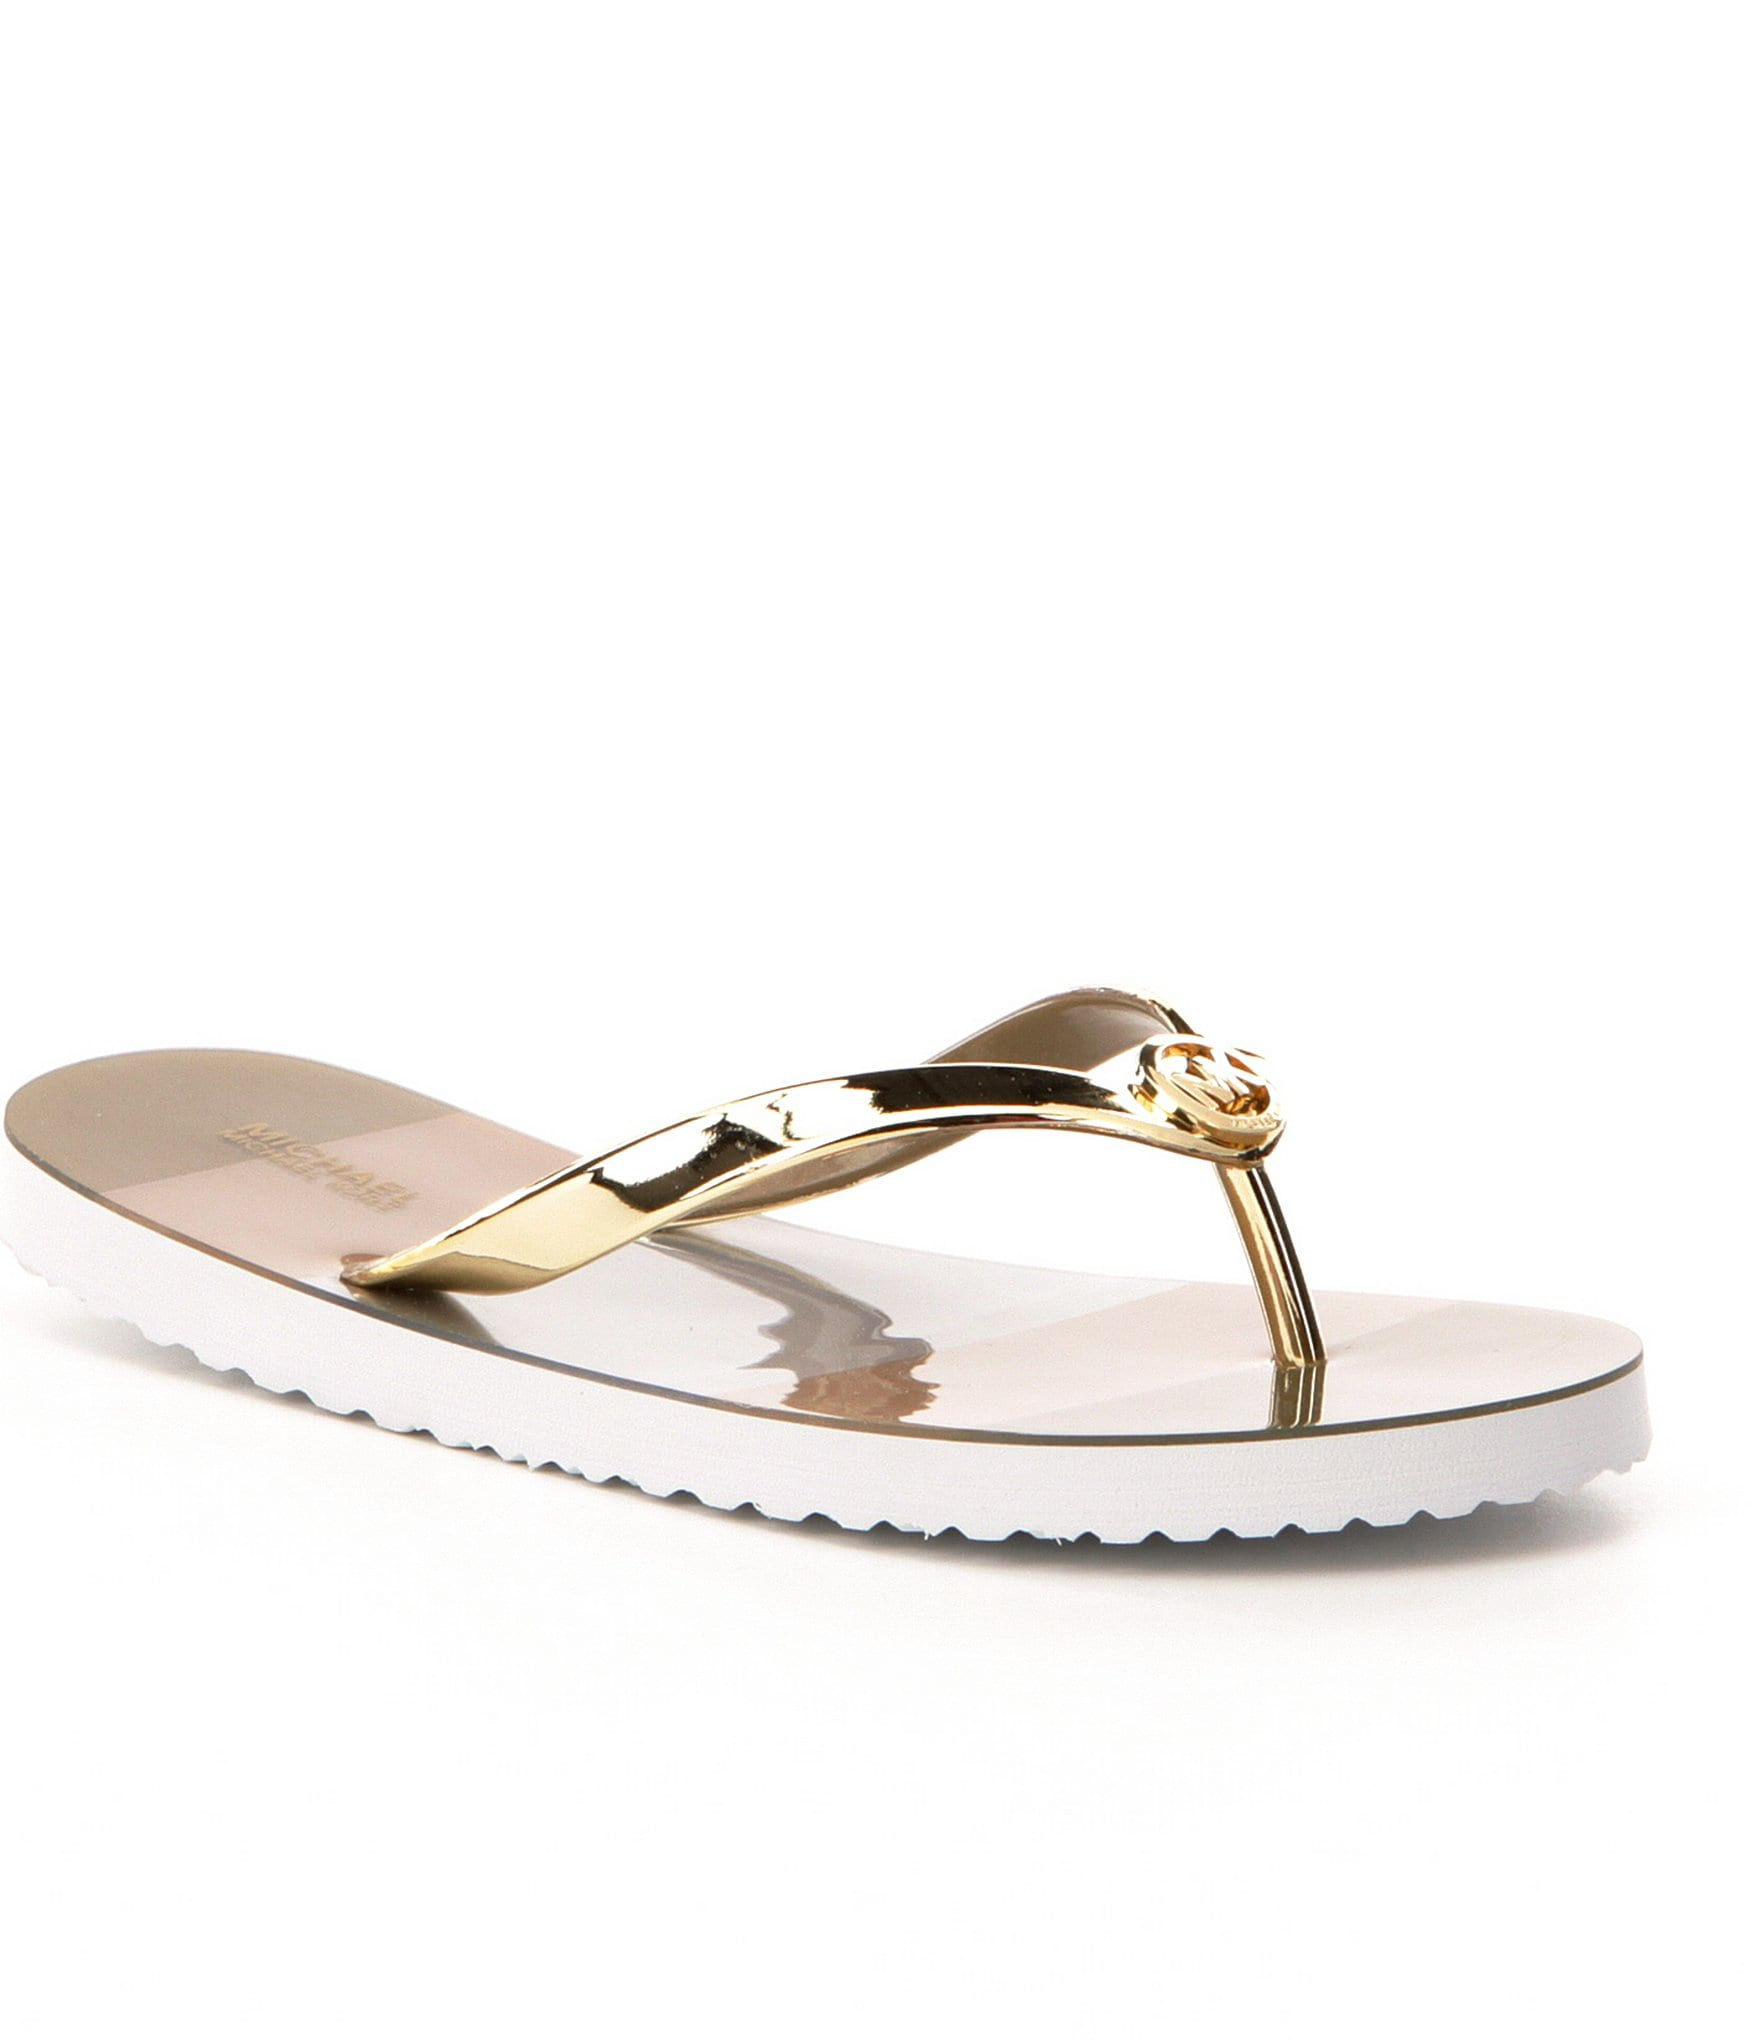 Women's jelly sandals size 10 - Women's Jelly Sandals Size 10 34